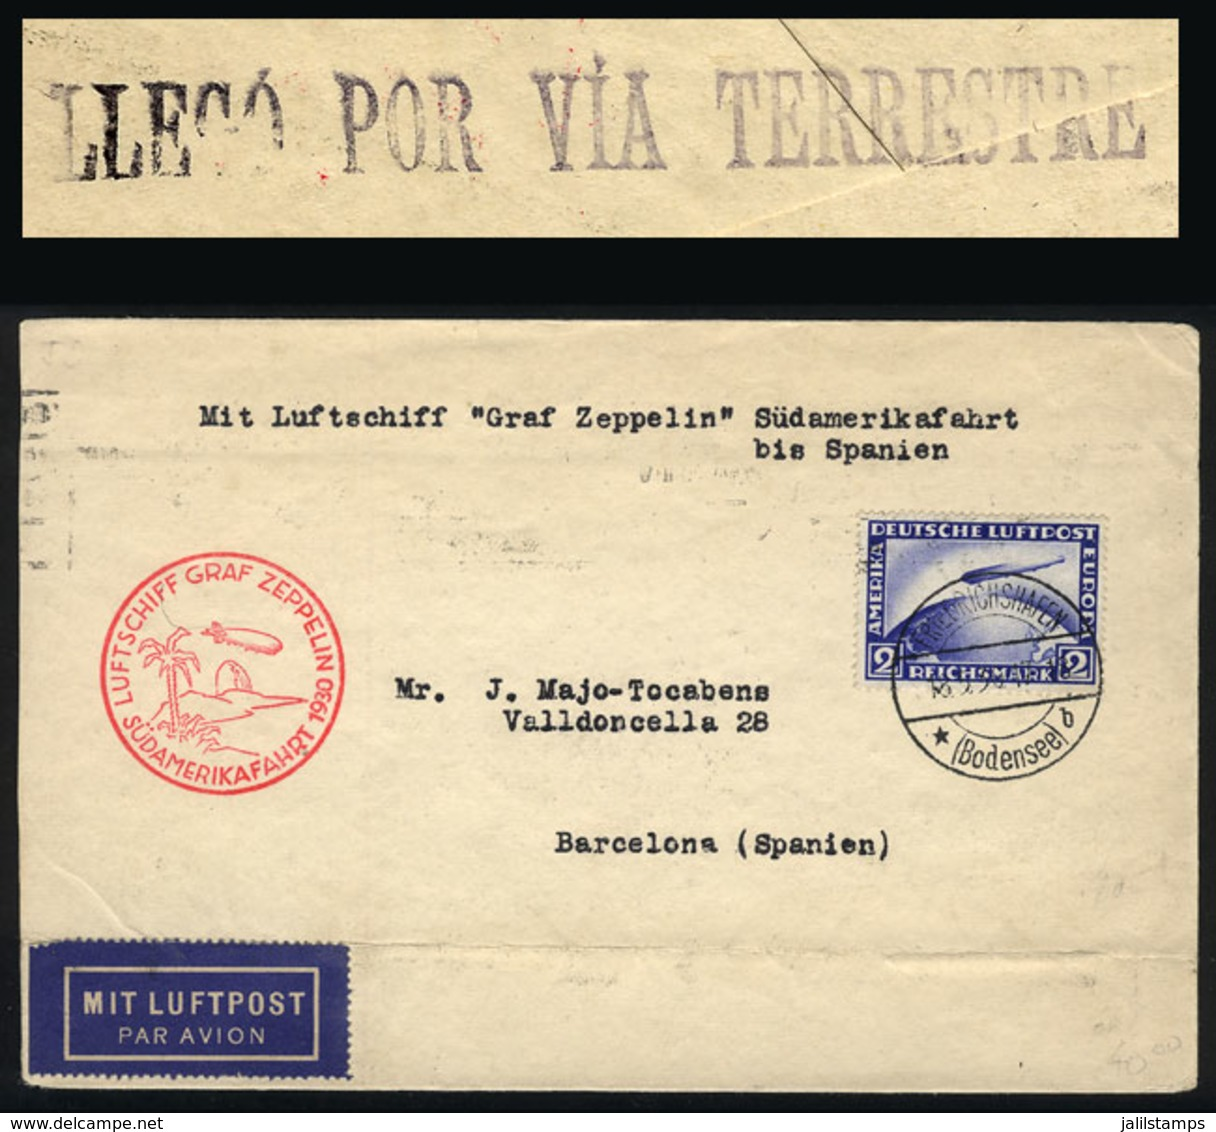 GERMANY: Cover Flown By ZEPPELIN, Sent From Friedrichshafen To Barcelona (Spain) On 18/MAY/1930 Franked With 2Mk. (Sc.C2 - Germany